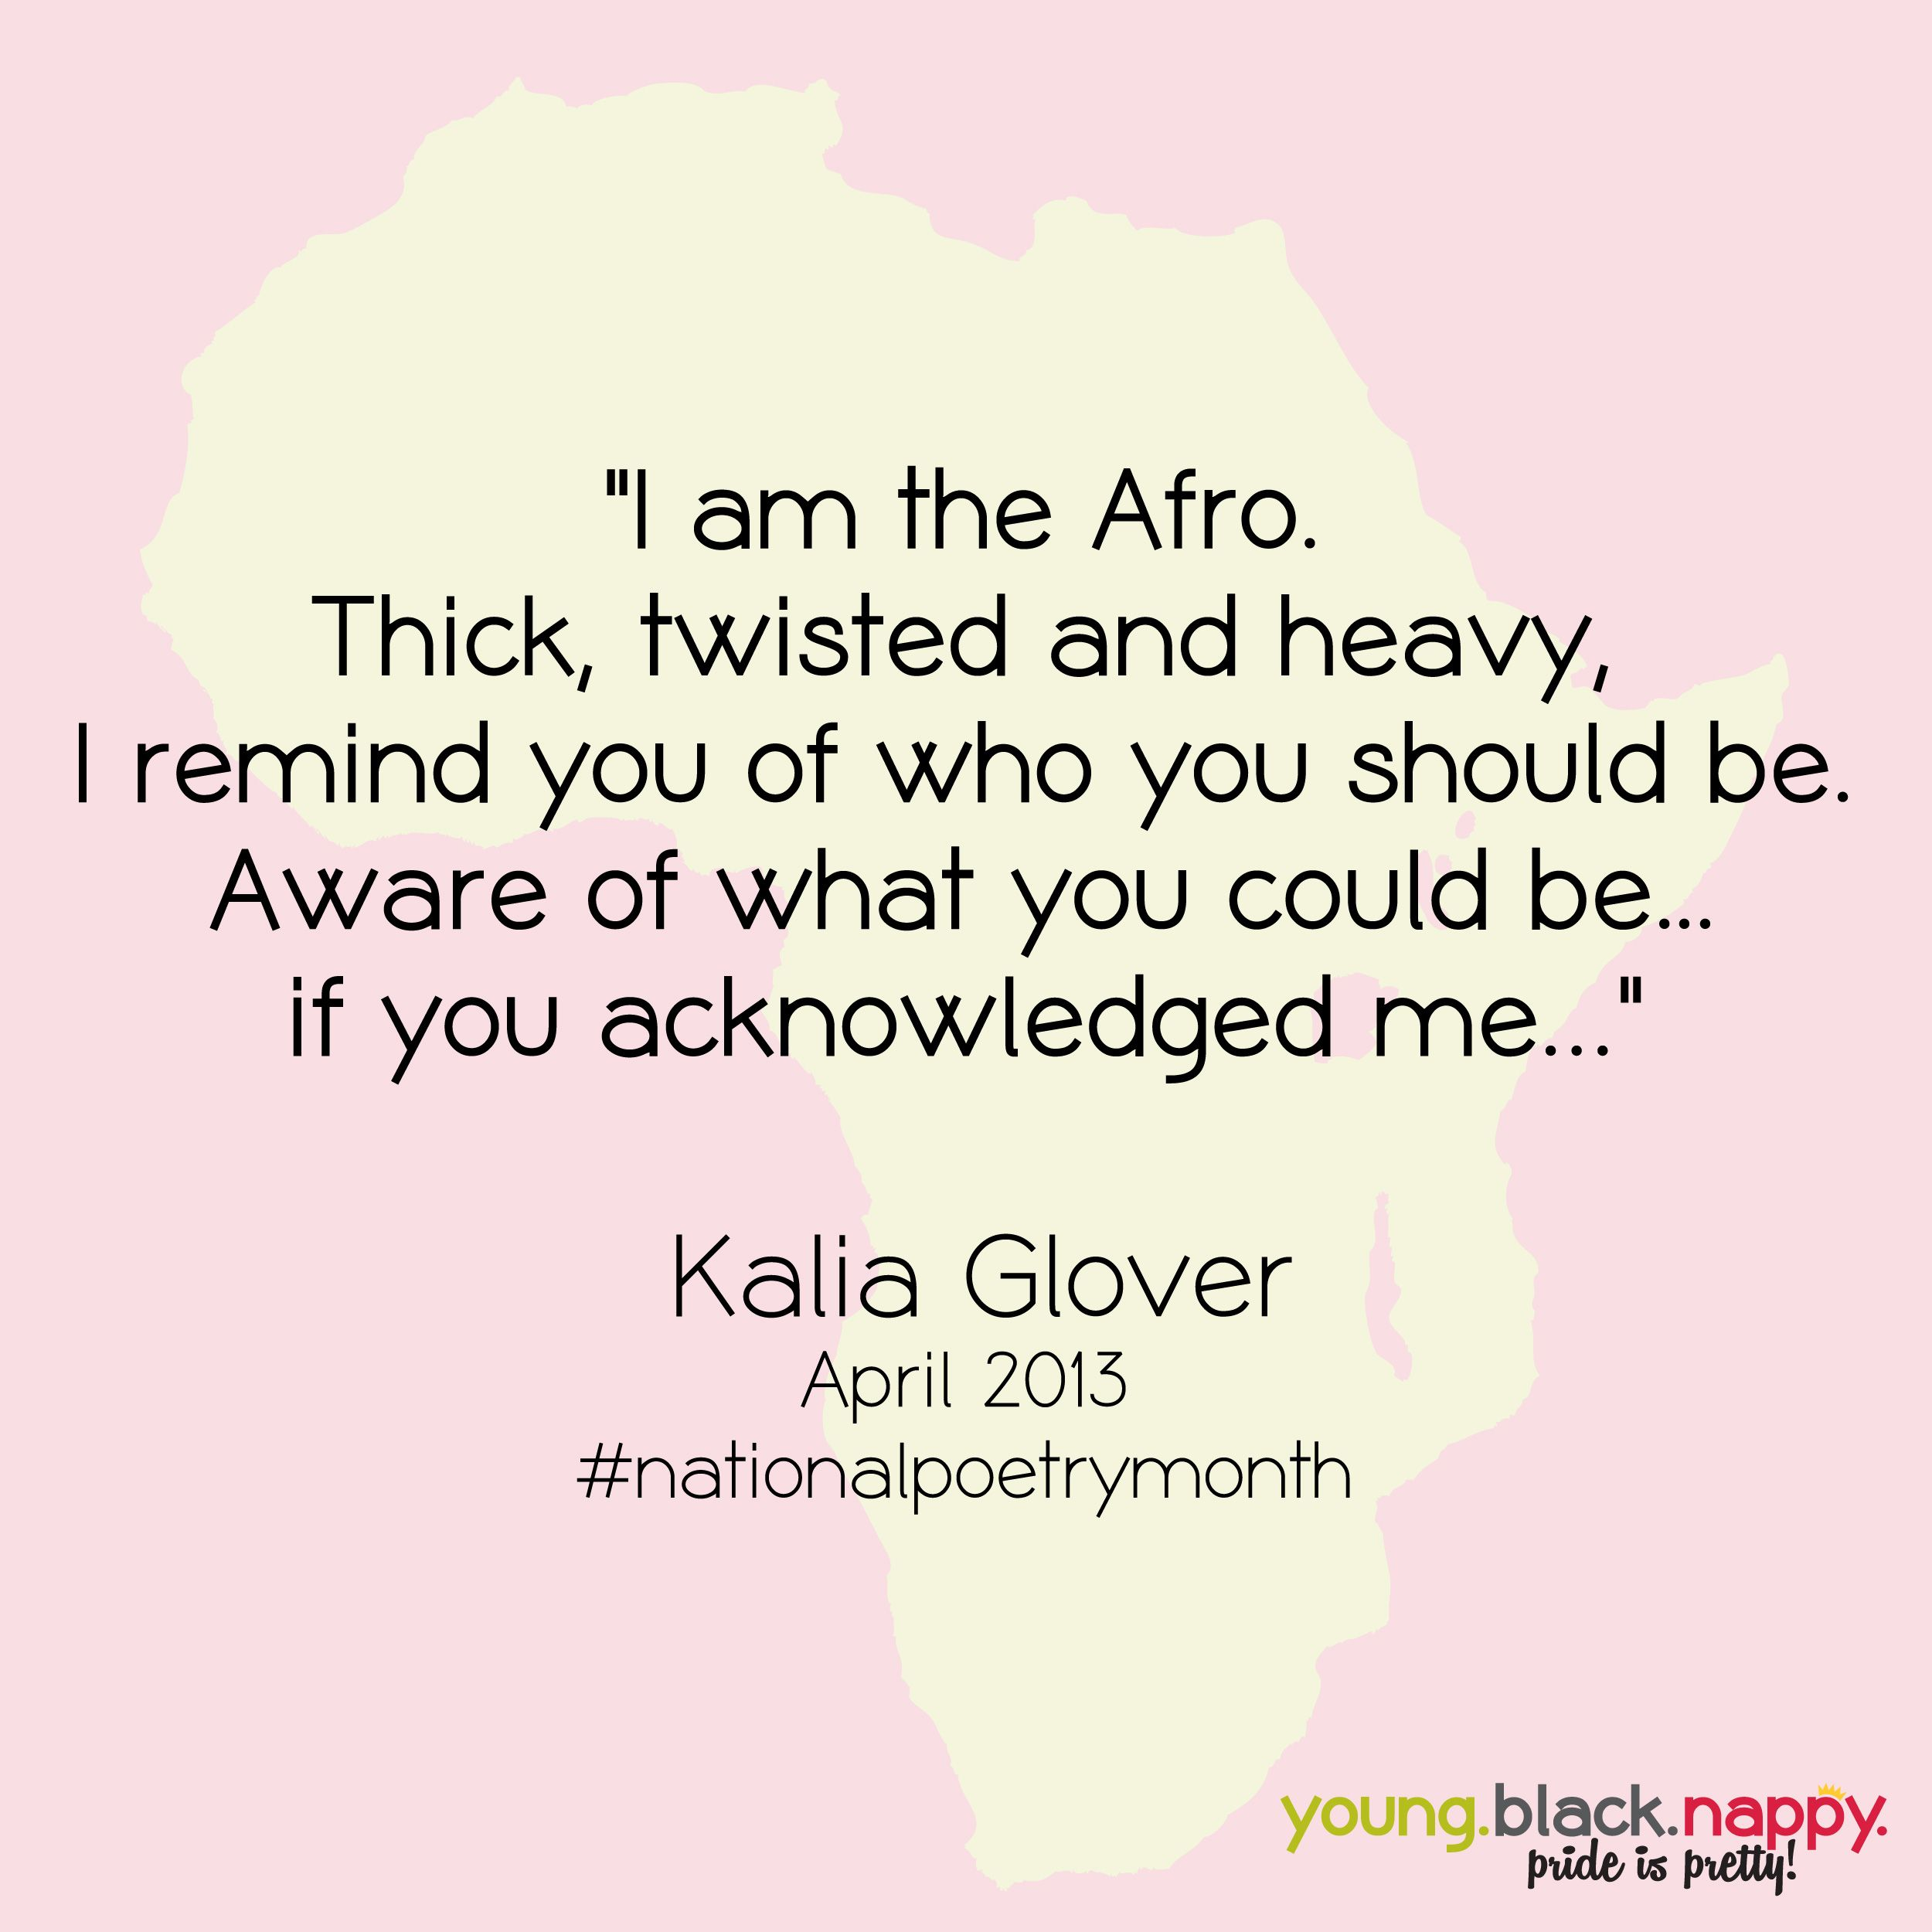 A poetic ode to the Afro in honor of National Poetry Month ...